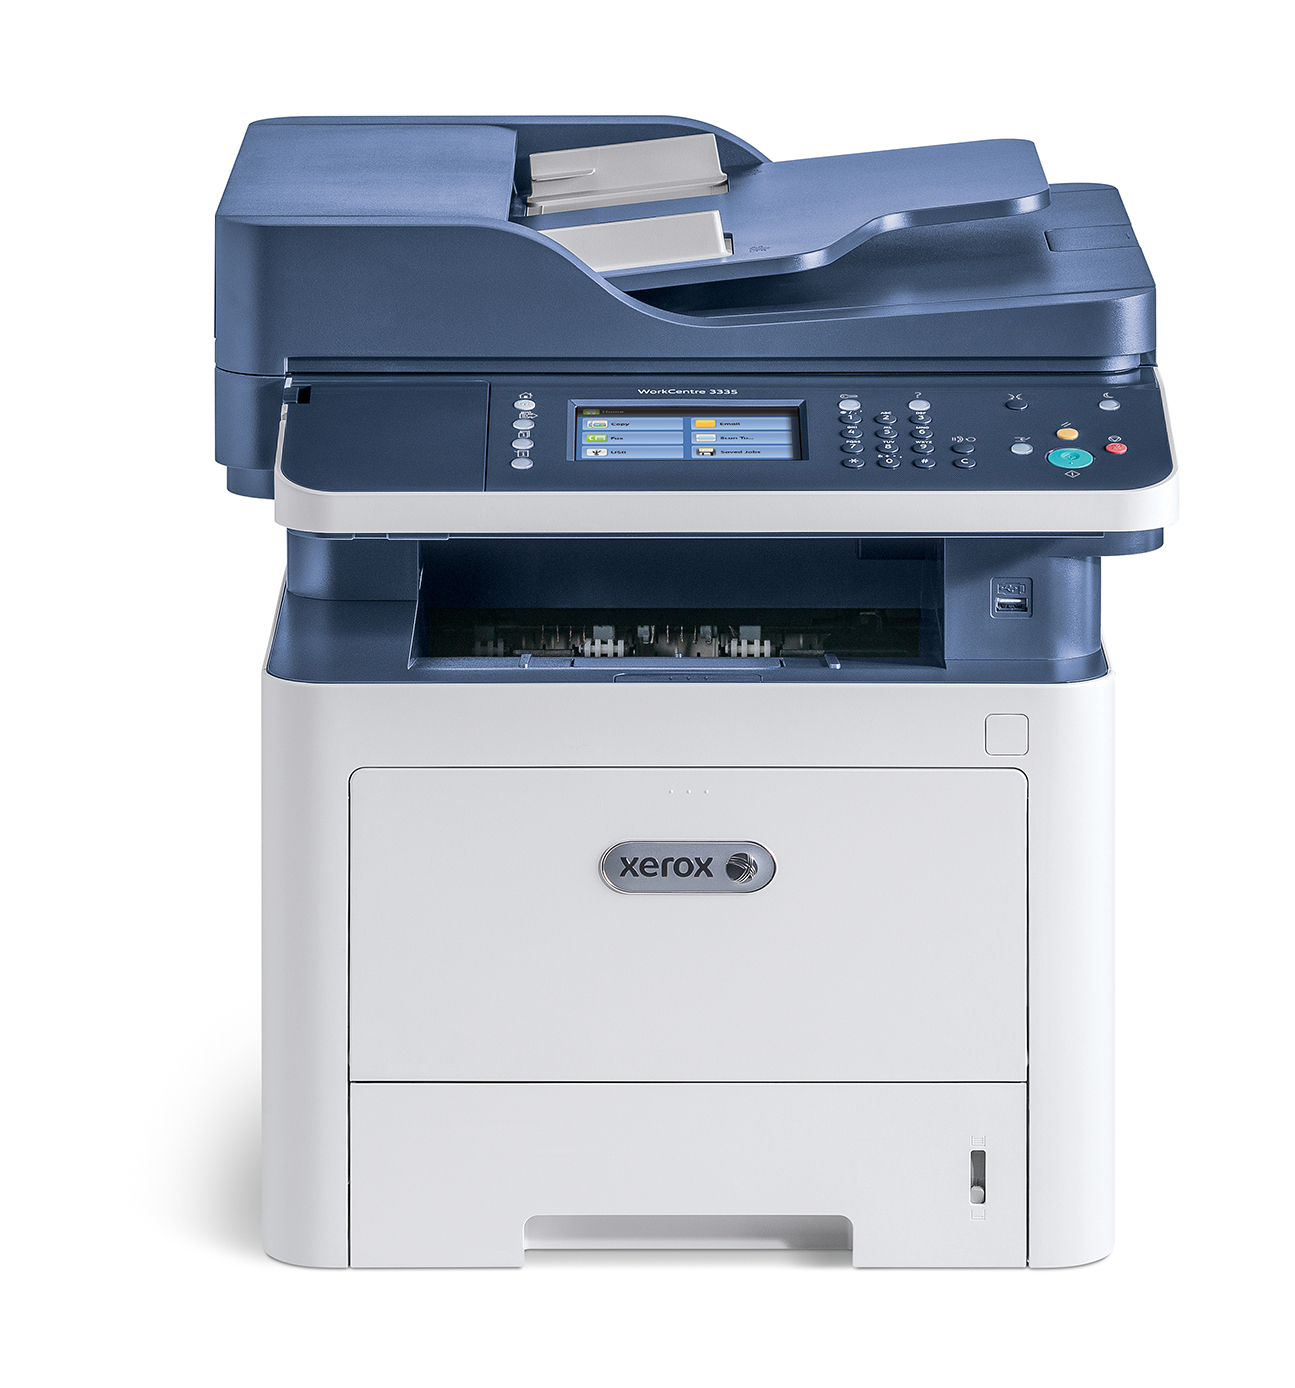 Xerox WorkCentre WC 3335 A4 33 ppm WiFi Doble cara Copia/impresión/escaneado/fax PS3 PCL5e/6 ADF 2 bandejas 300 hojas